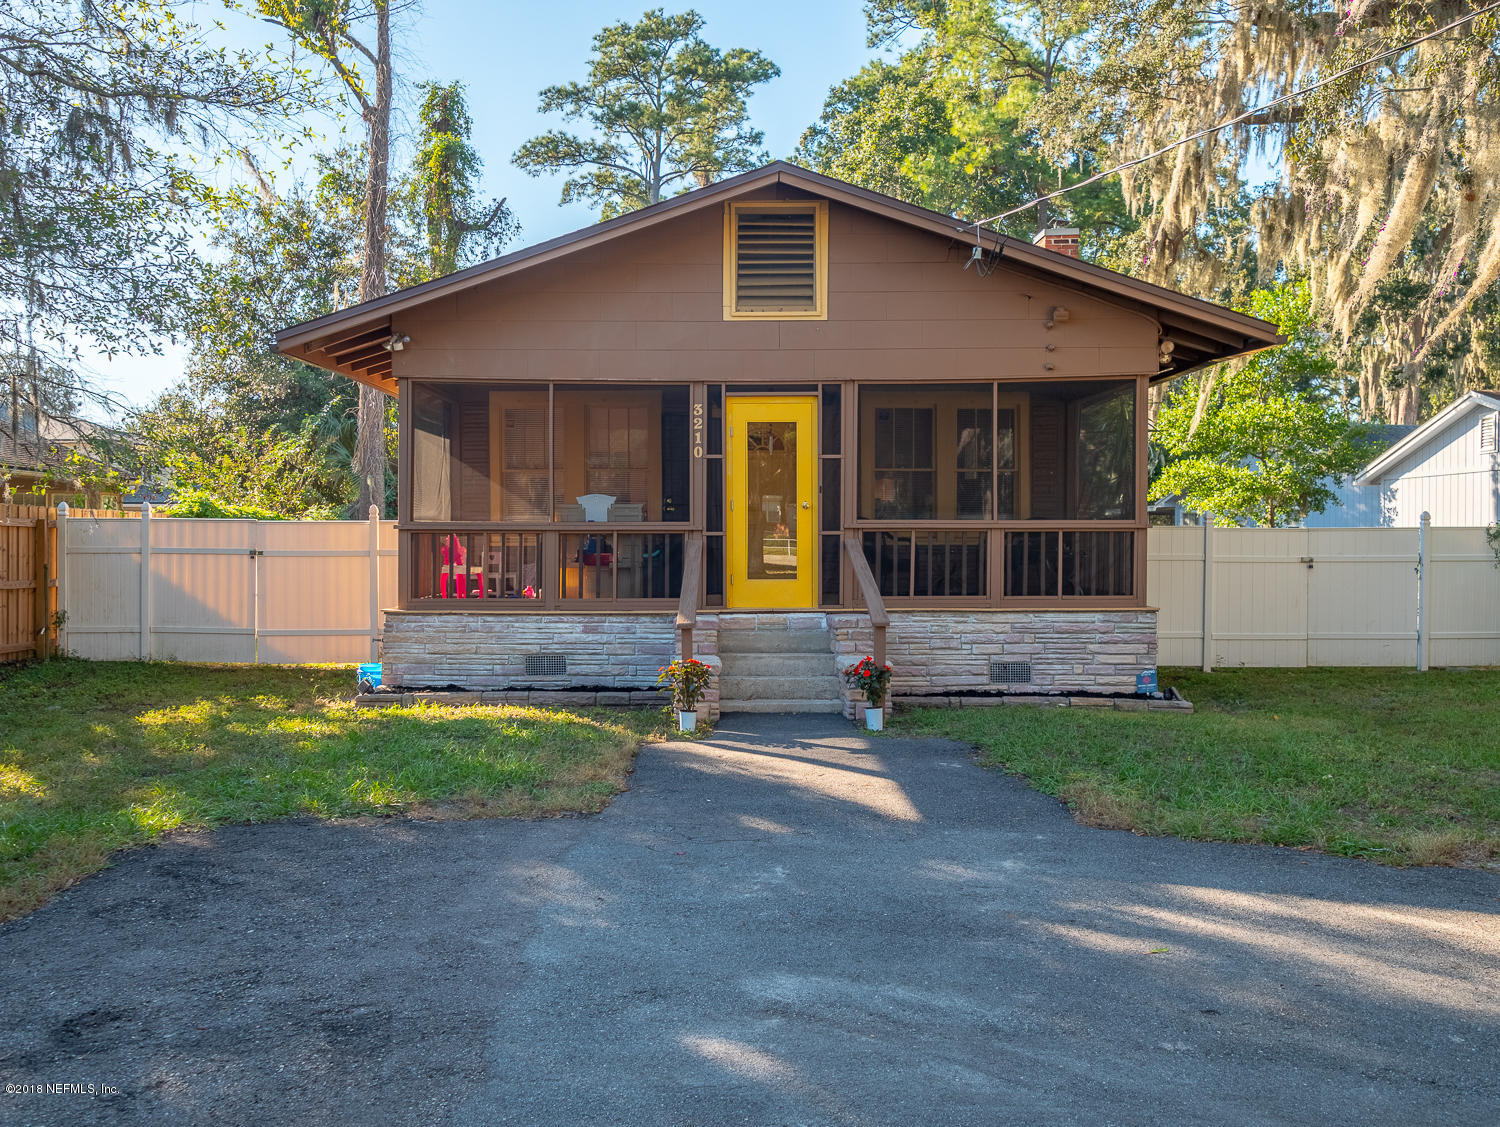 3210 ST AUGUSTINE, JACKSONVILLE, FLORIDA 32207, 3 Bedrooms Bedrooms, ,2 BathroomsBathrooms,Residential - single family,For sale,ST AUGUSTINE,965253